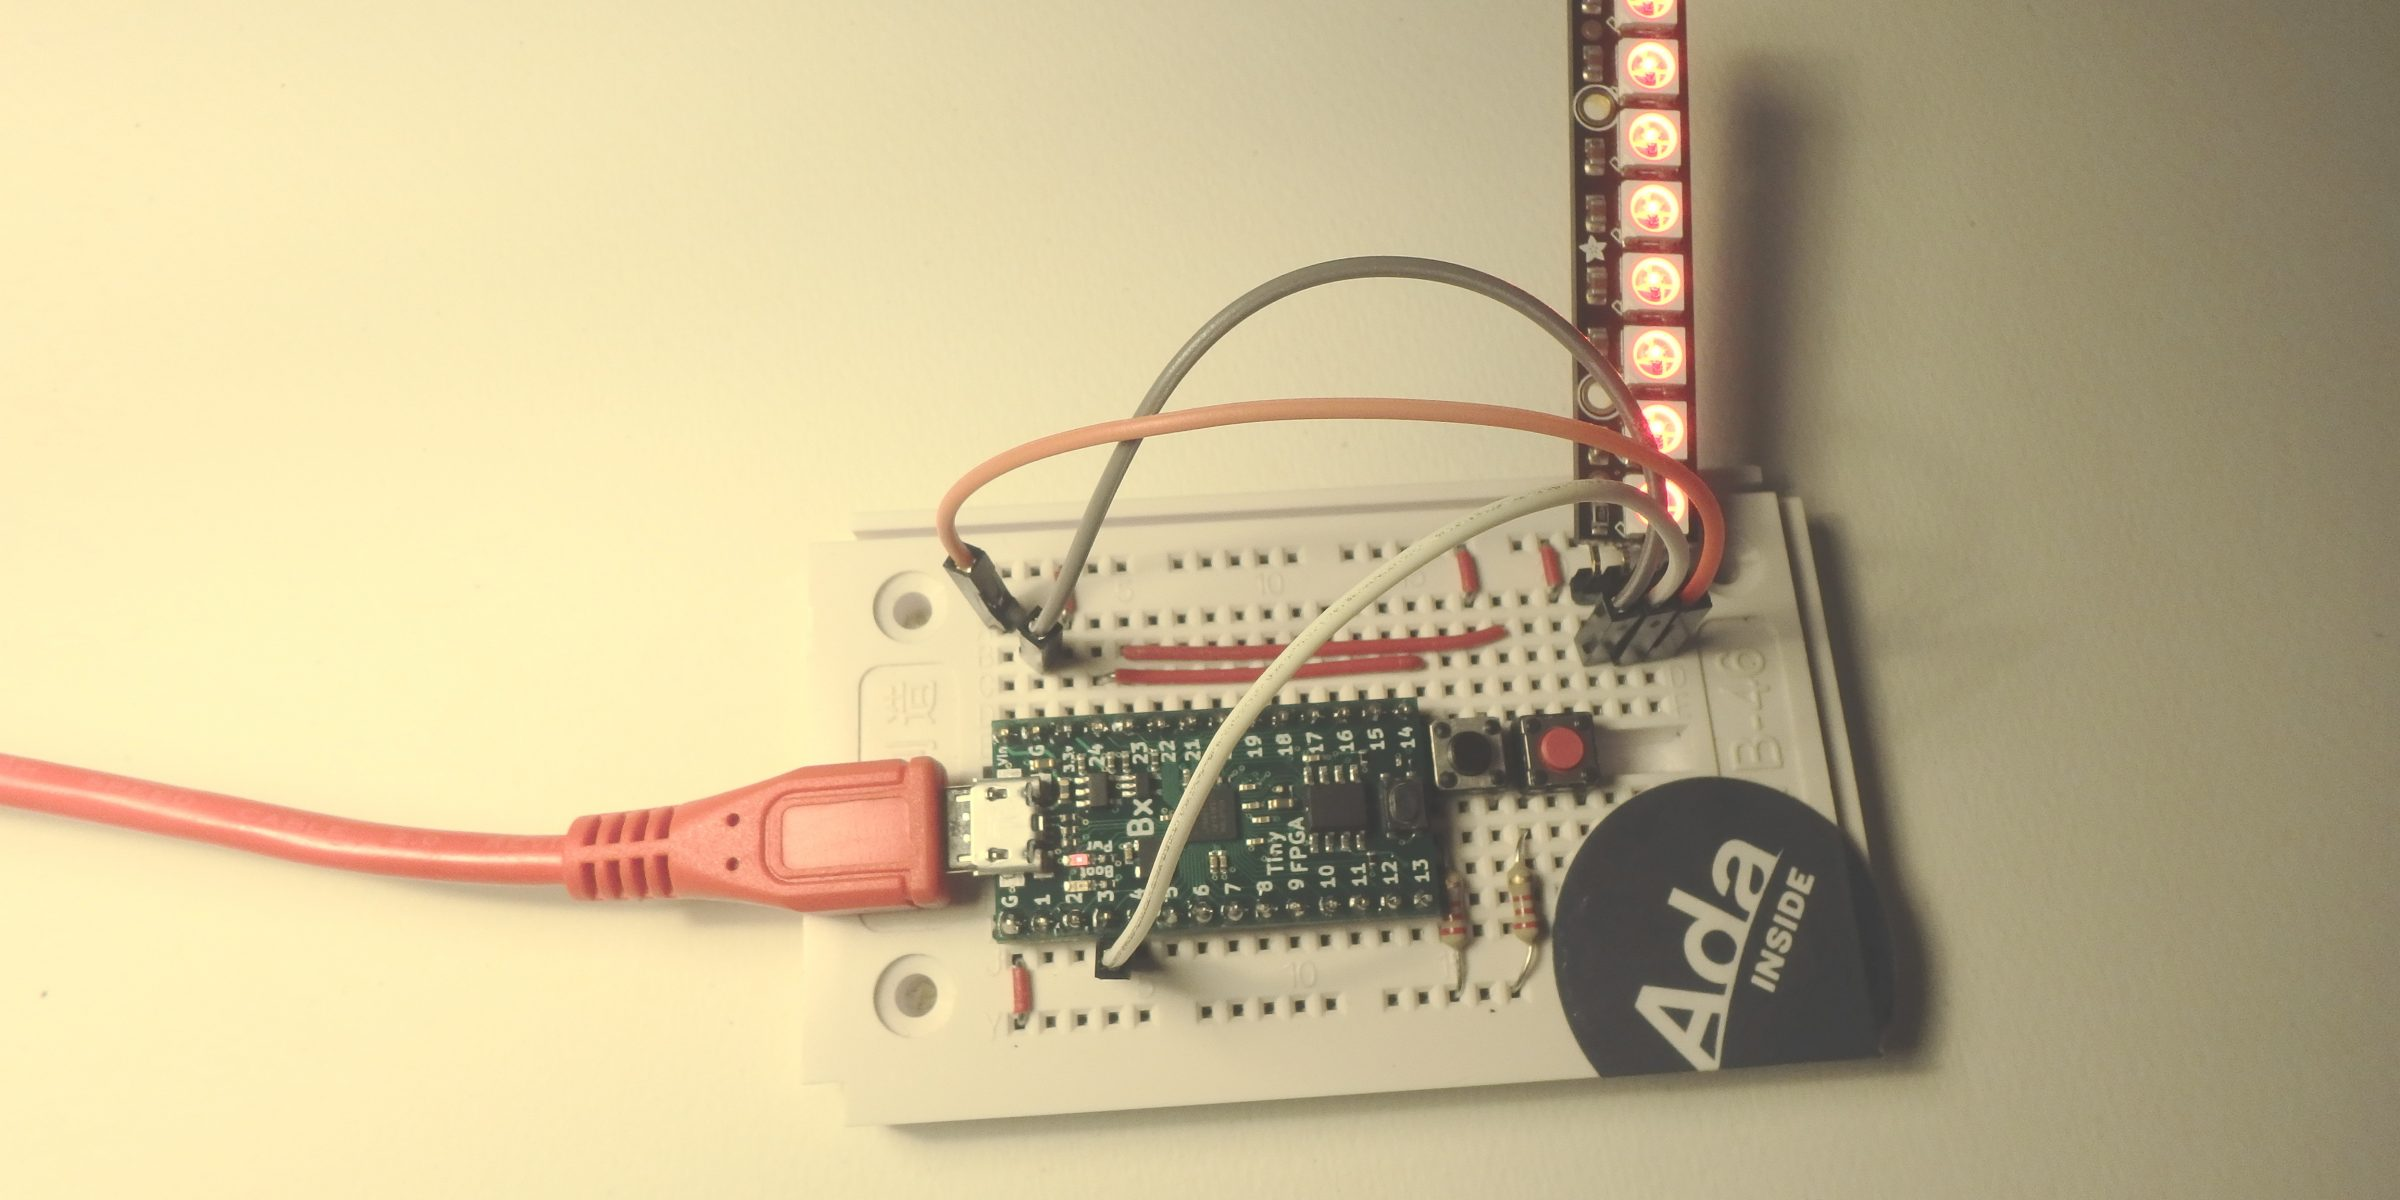 Ada on FPGAs with PicoRV32 - The AdaCore Blog